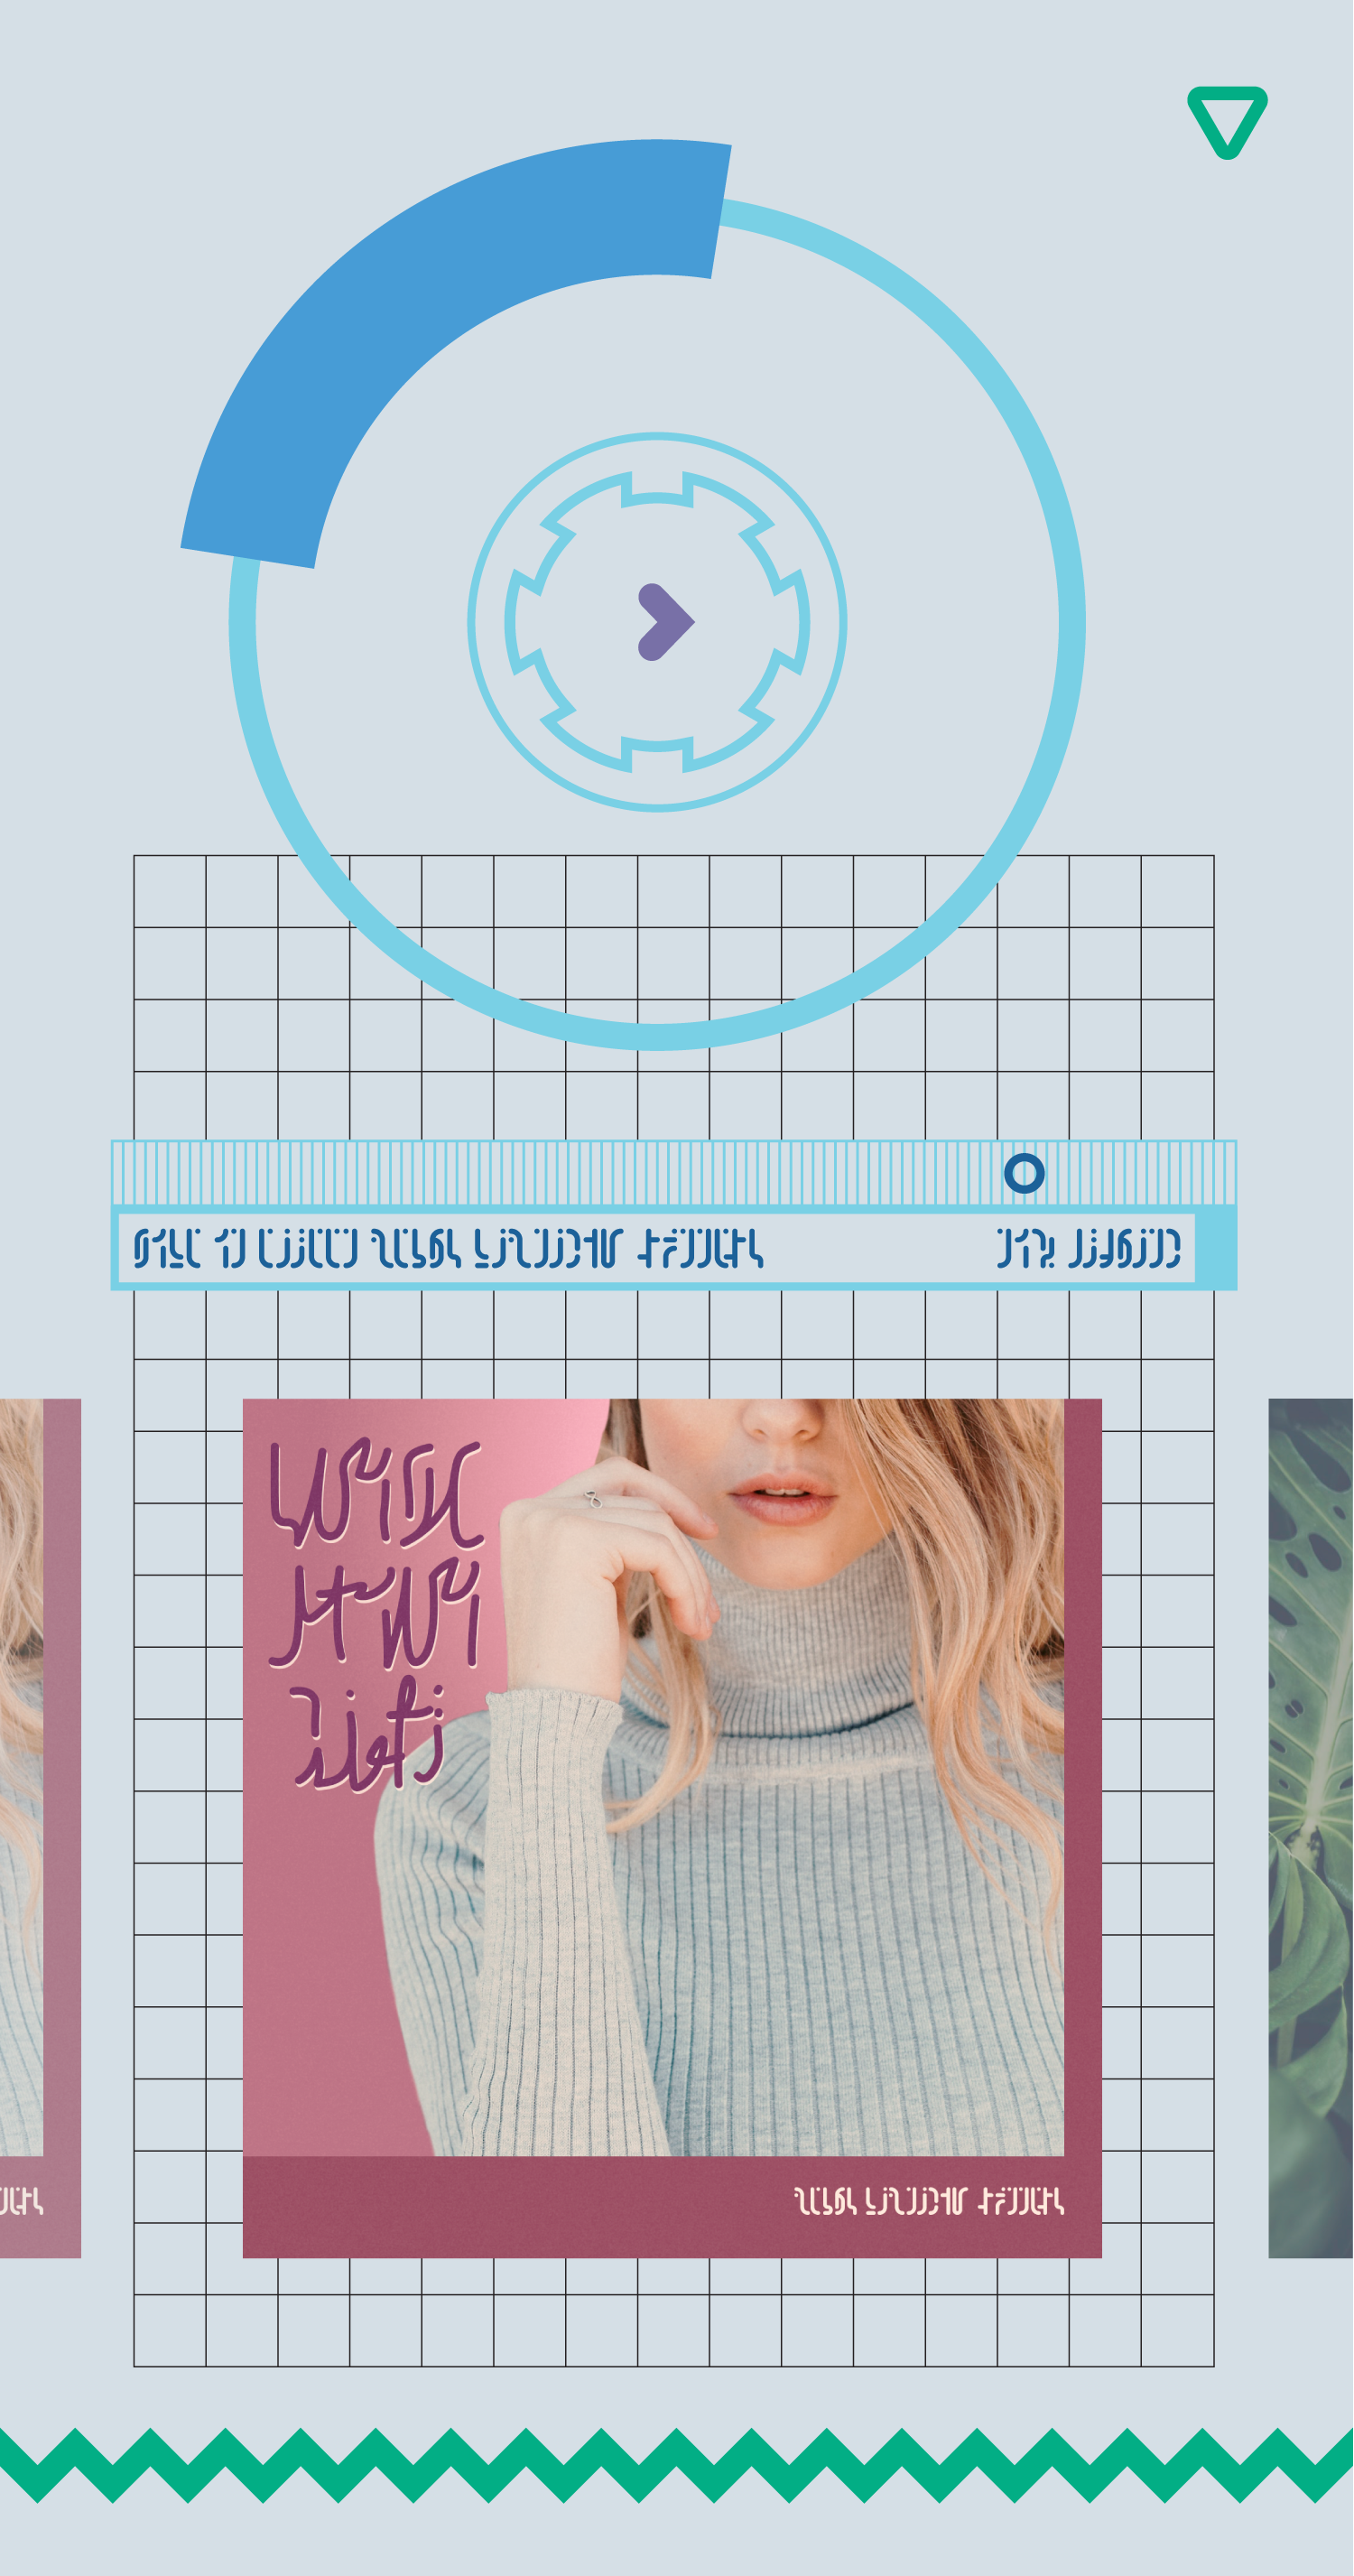 20190223mobile-music-ui.png